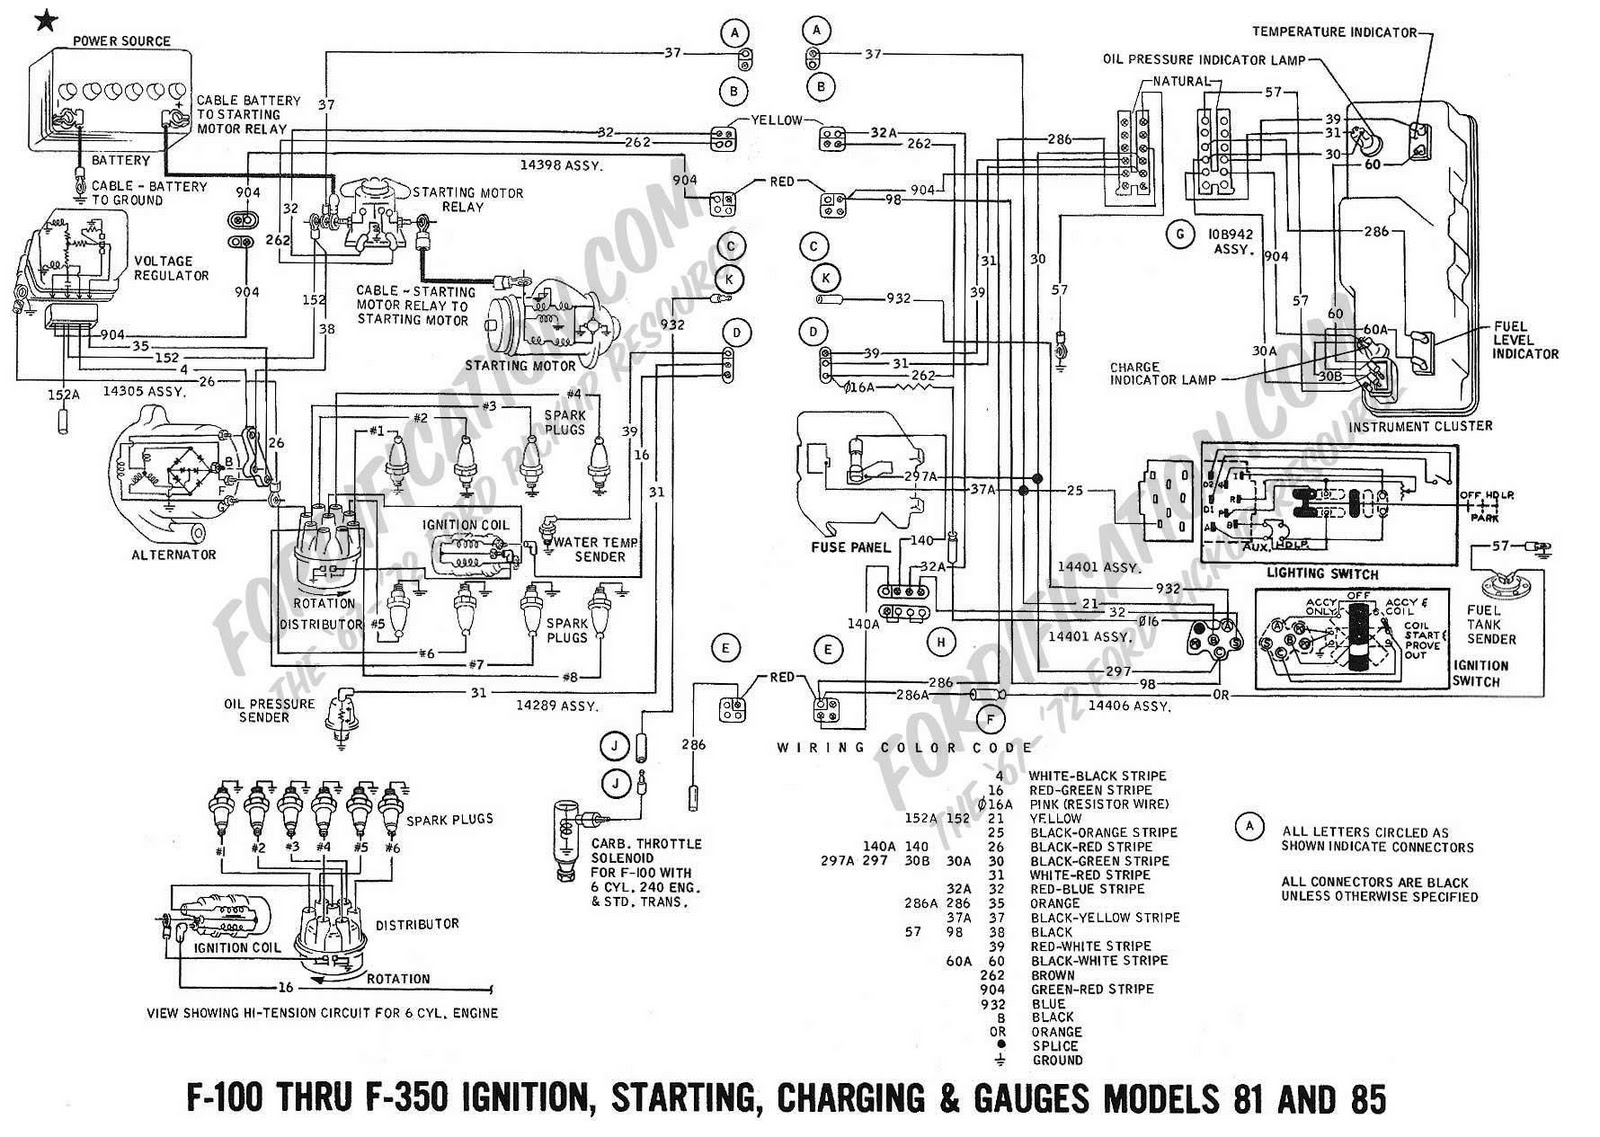 hight resolution of 1963 ford ignition coil wiring wiring diagram explained rh 8 11 corruptionincoal org 63 corvette wiring diagram 1963 chevy impala wiring diagram